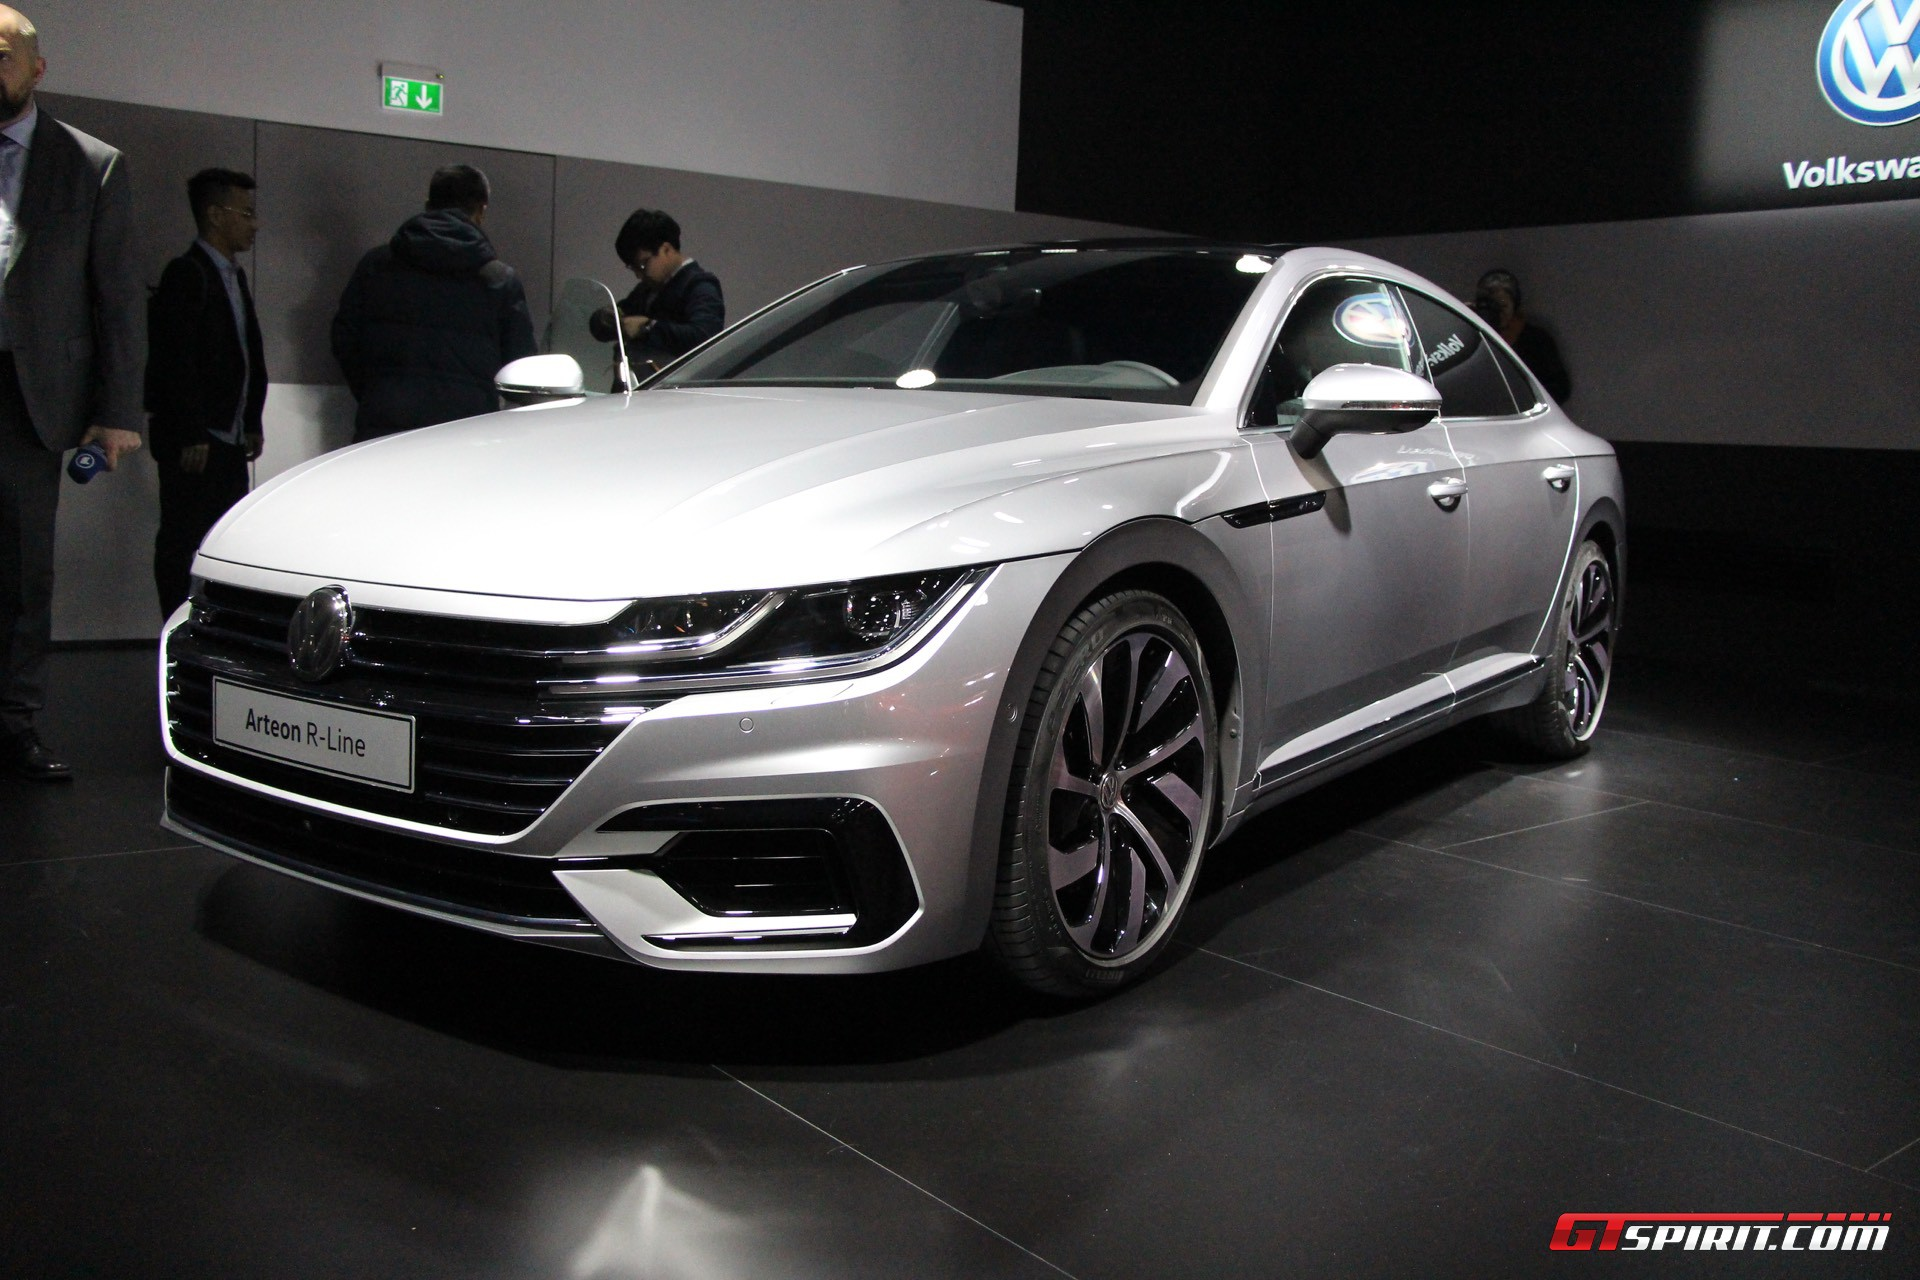 geneva 2017 volkswagen arteon gtspirit. Black Bedroom Furniture Sets. Home Design Ideas